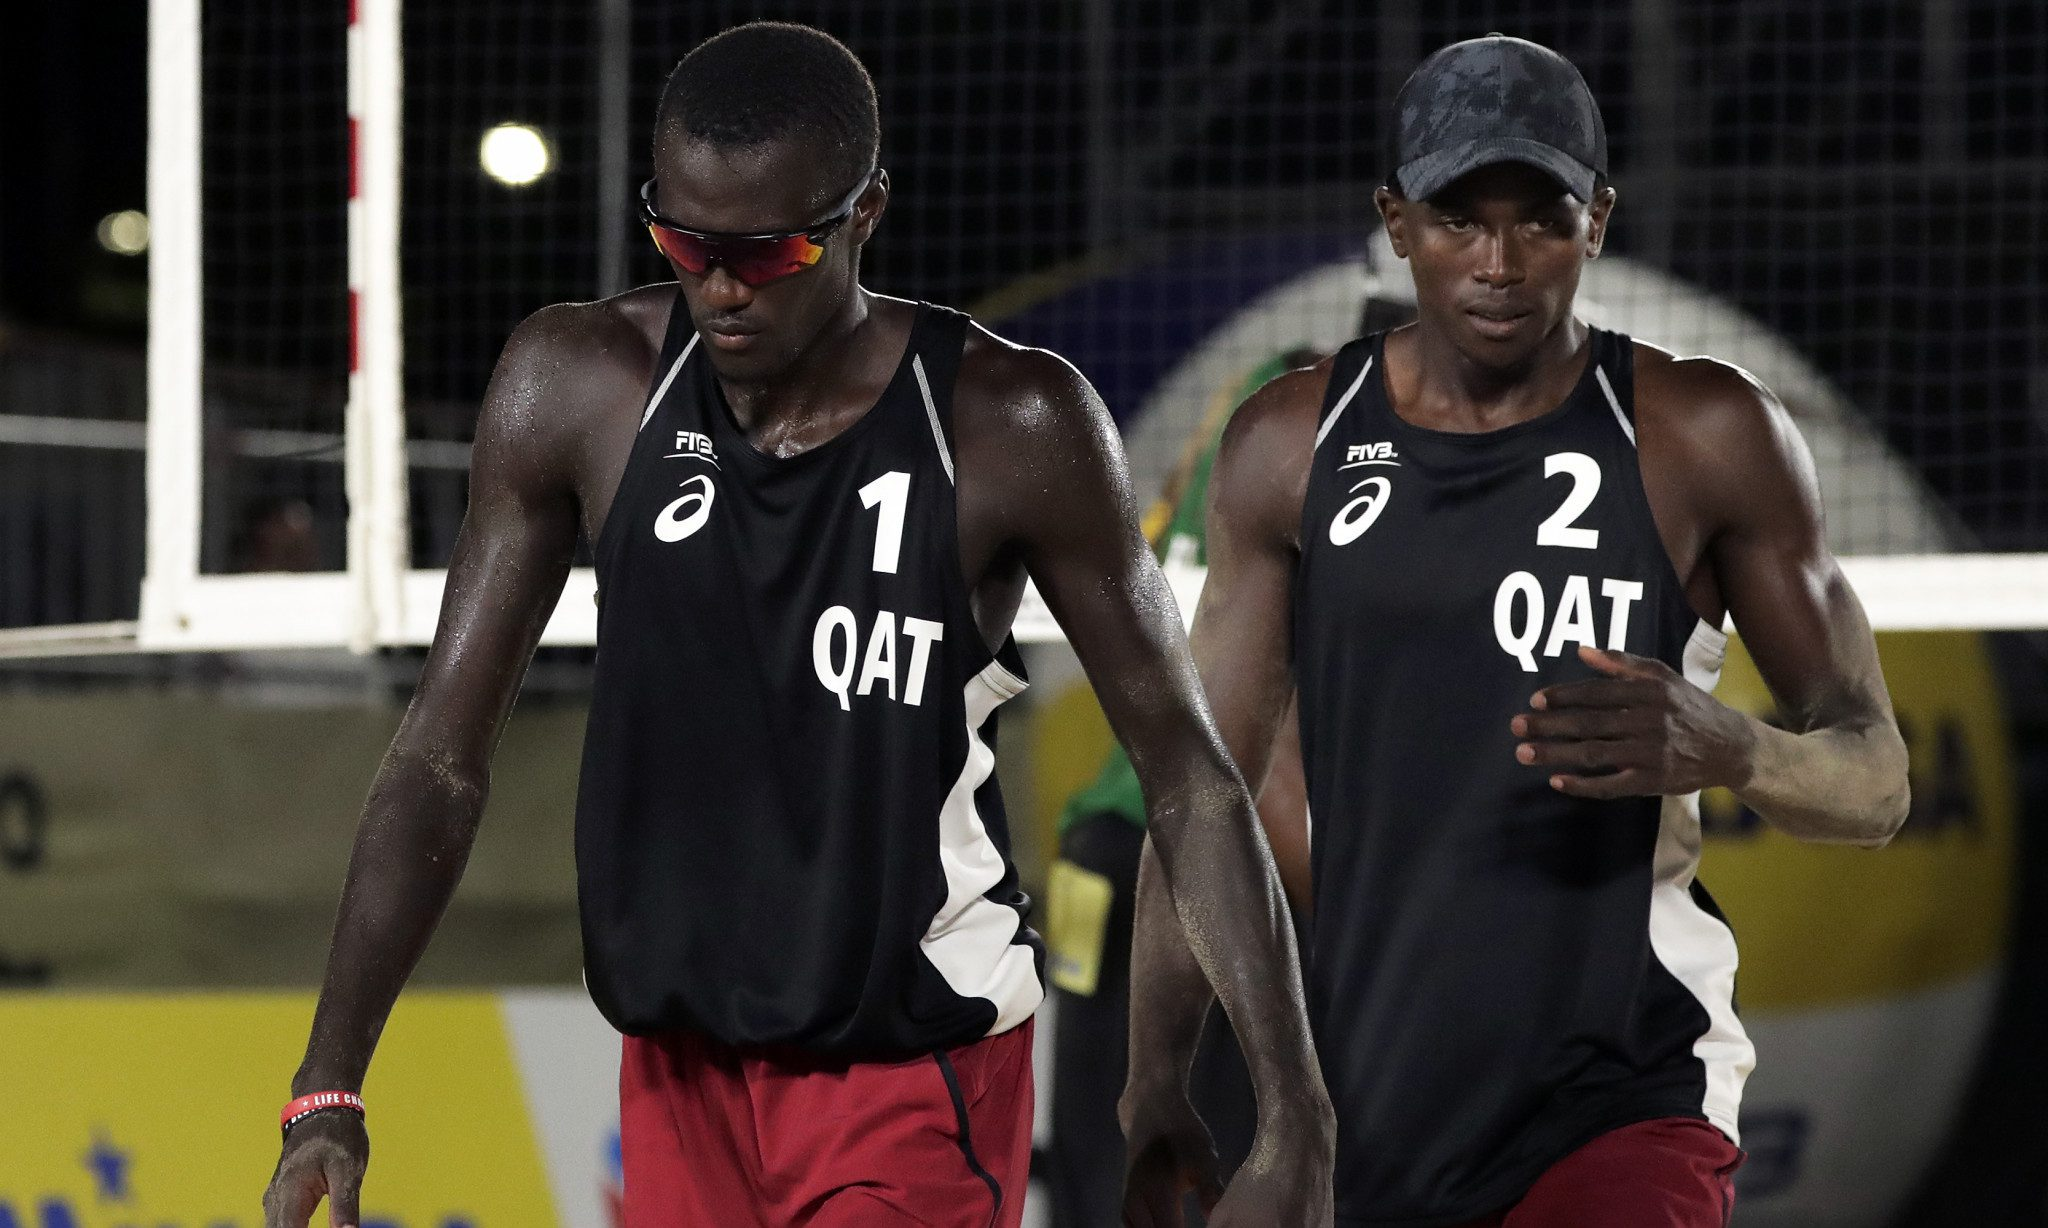 QATAR'S CHERIF & AHMED CONFIDENT OF QUALIFYING FOR TOKYO OLYMPICS